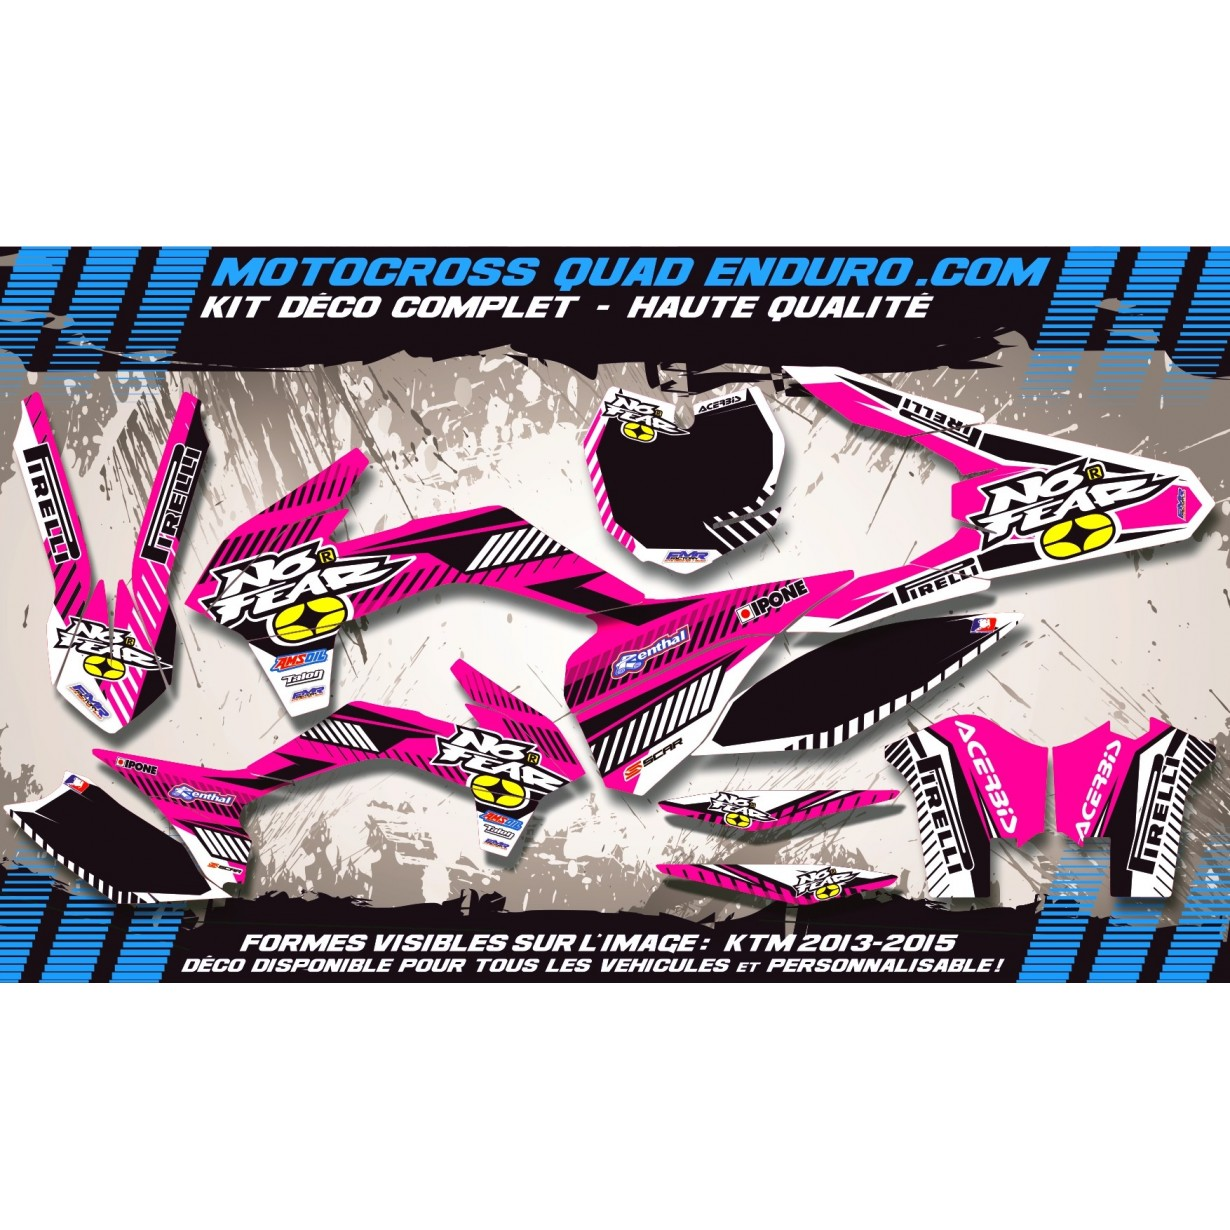 KIT DÉCO Perso 50 RR enduro 2007 NO FEAR MA5G